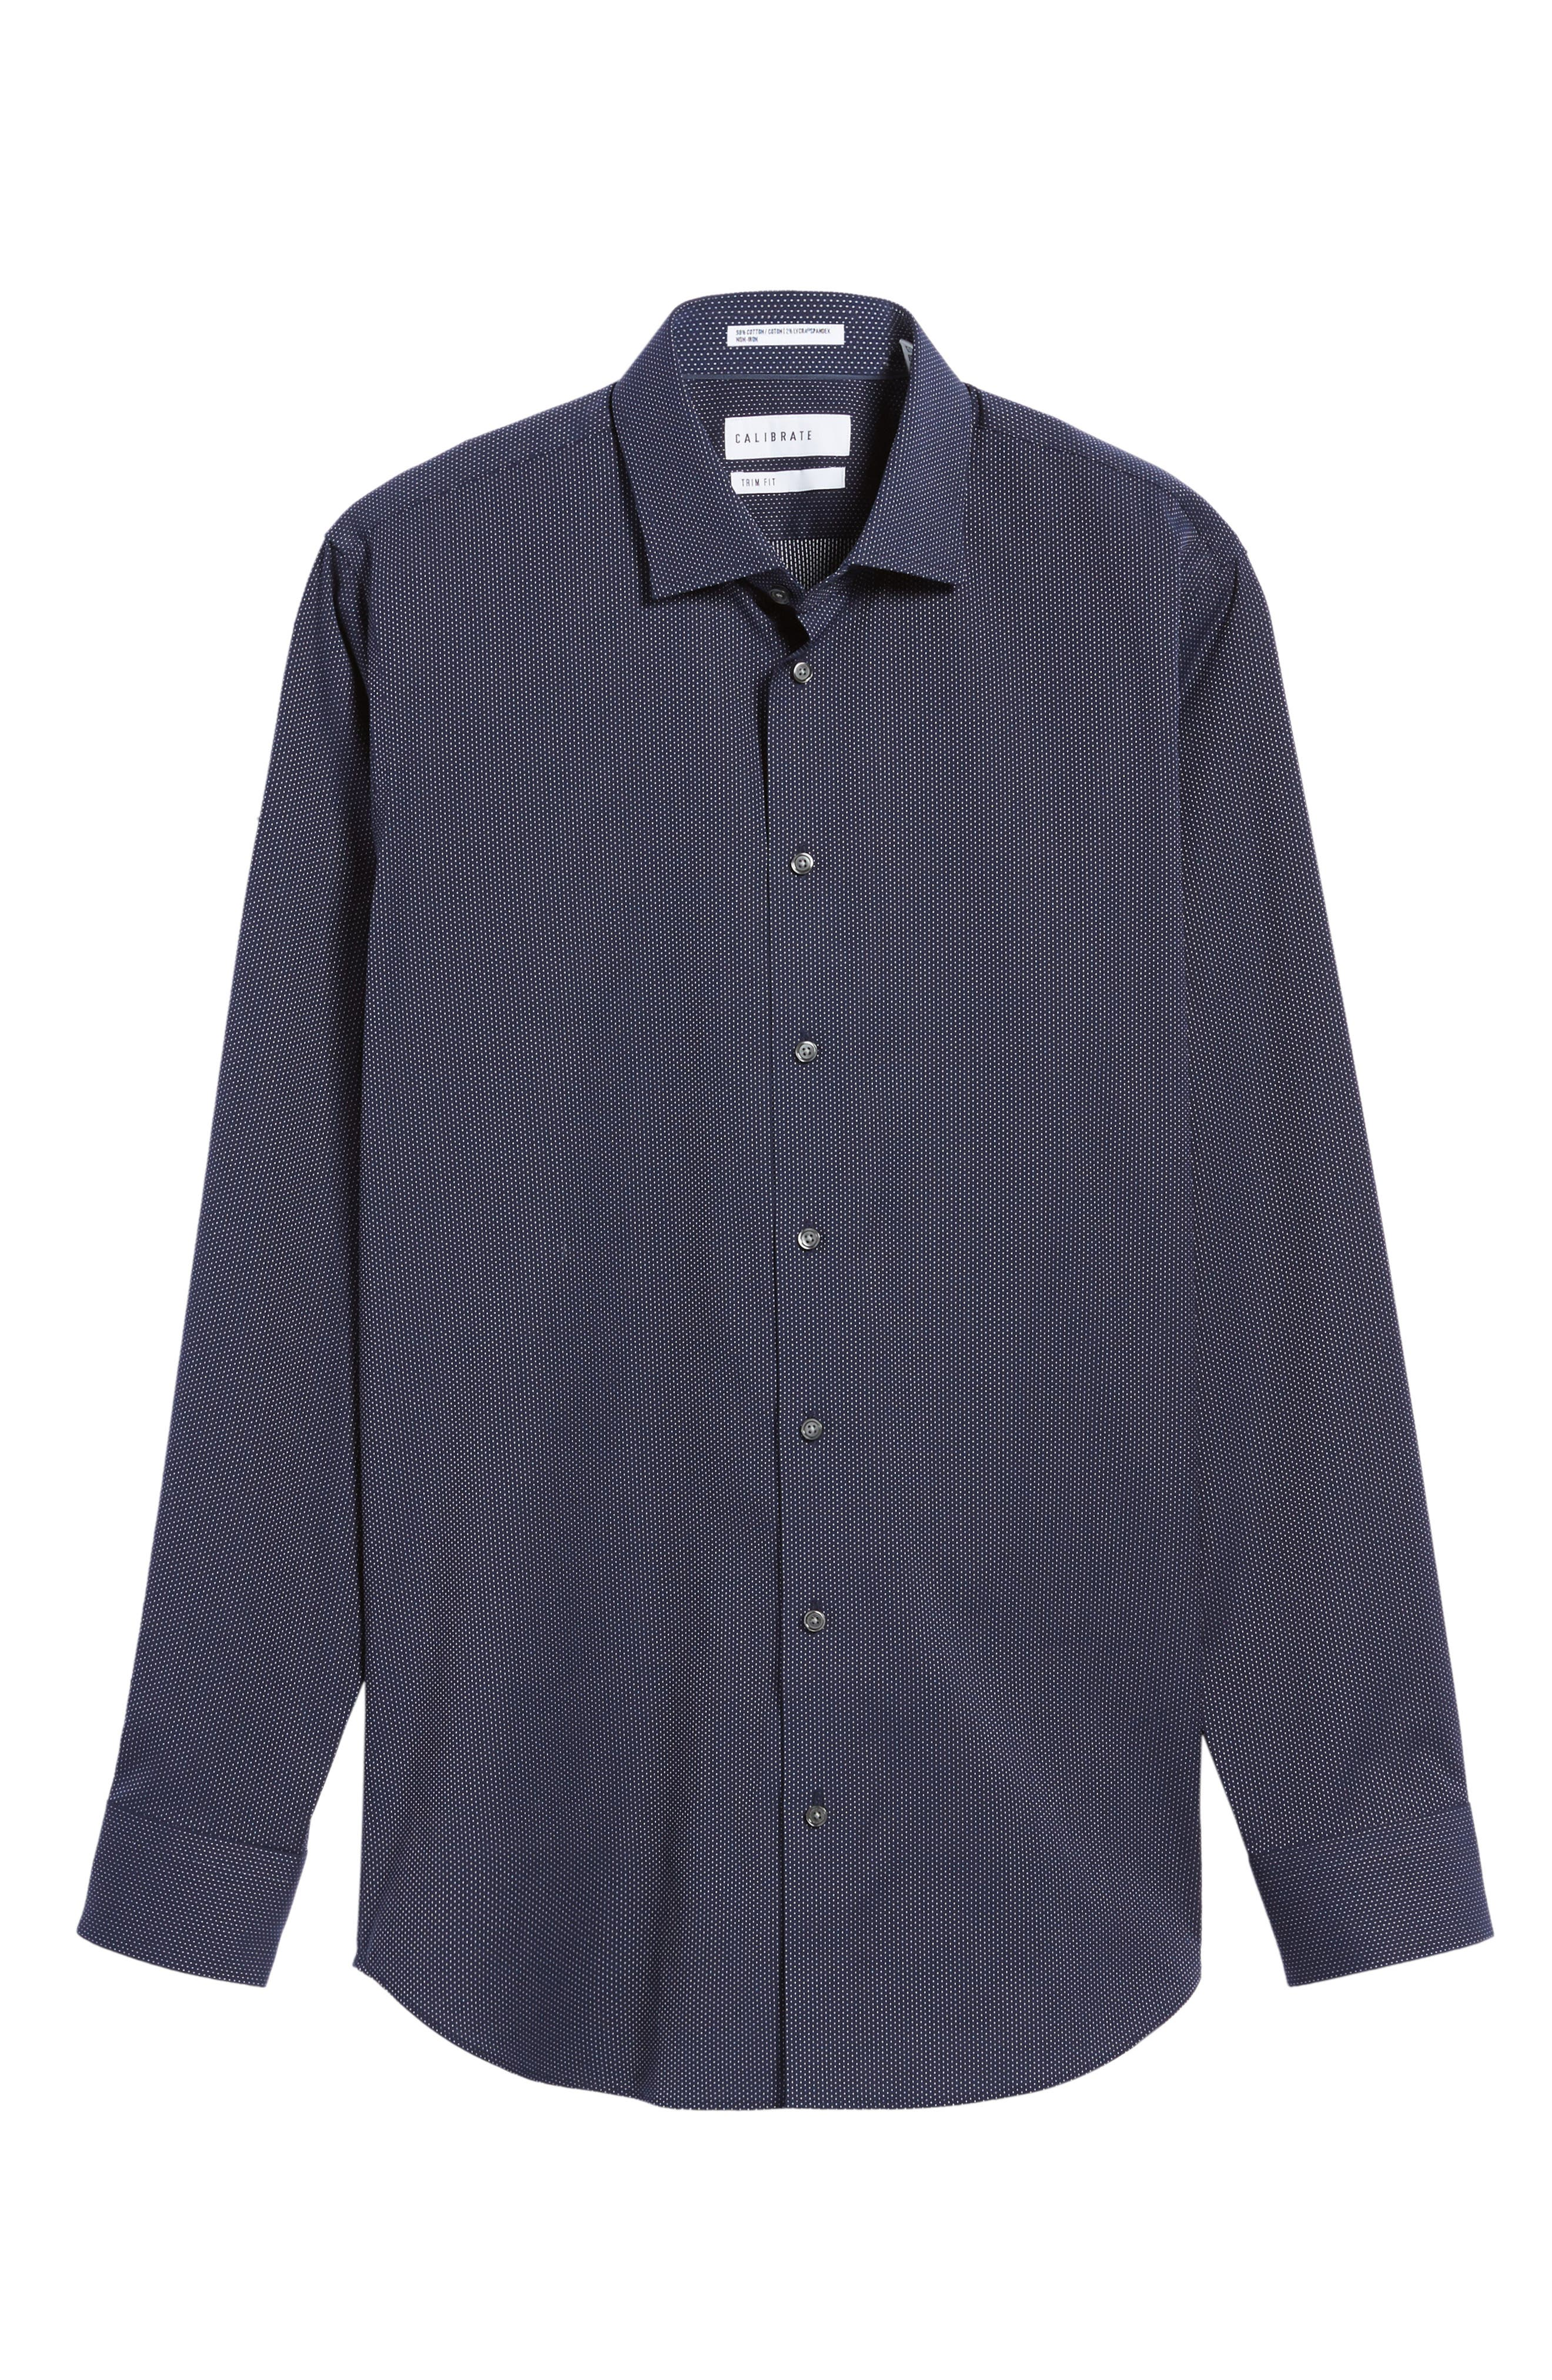 Trim Fit Non-Iron Microdot Dress Shirt,                             Alternate thumbnail 6, color,                             Navy Peacoat